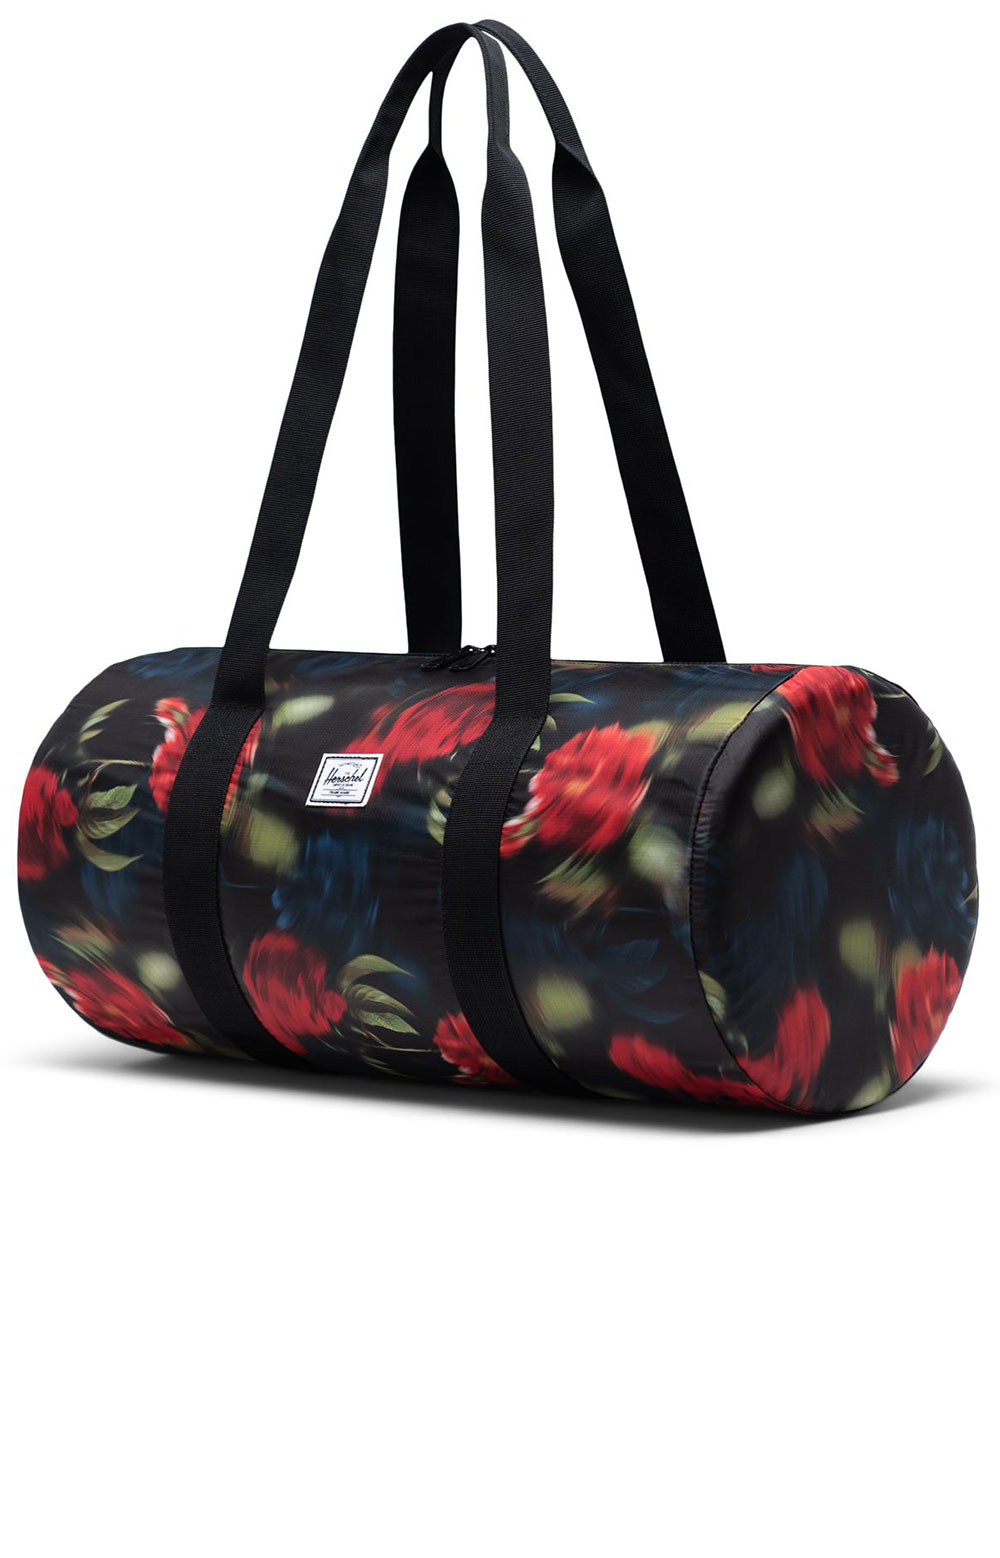 Packable Duffle Bag - Blurry Rose  2